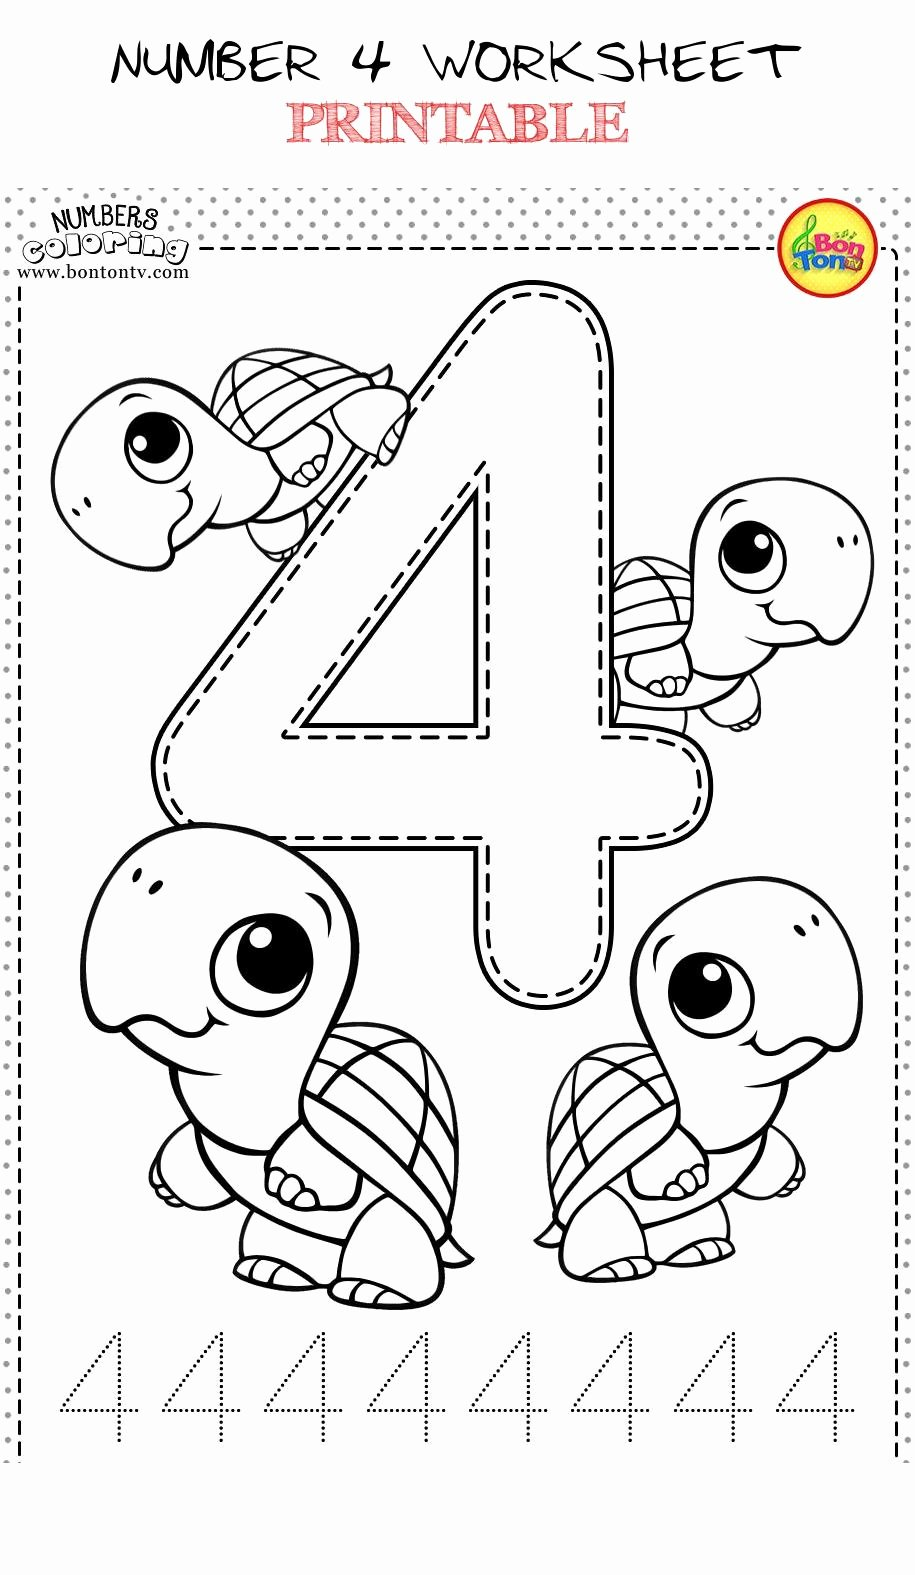 Number 4 Worksheets for Preschoolers Beautiful Number 4 Worksheet Printable Number Coloring Worksheets for